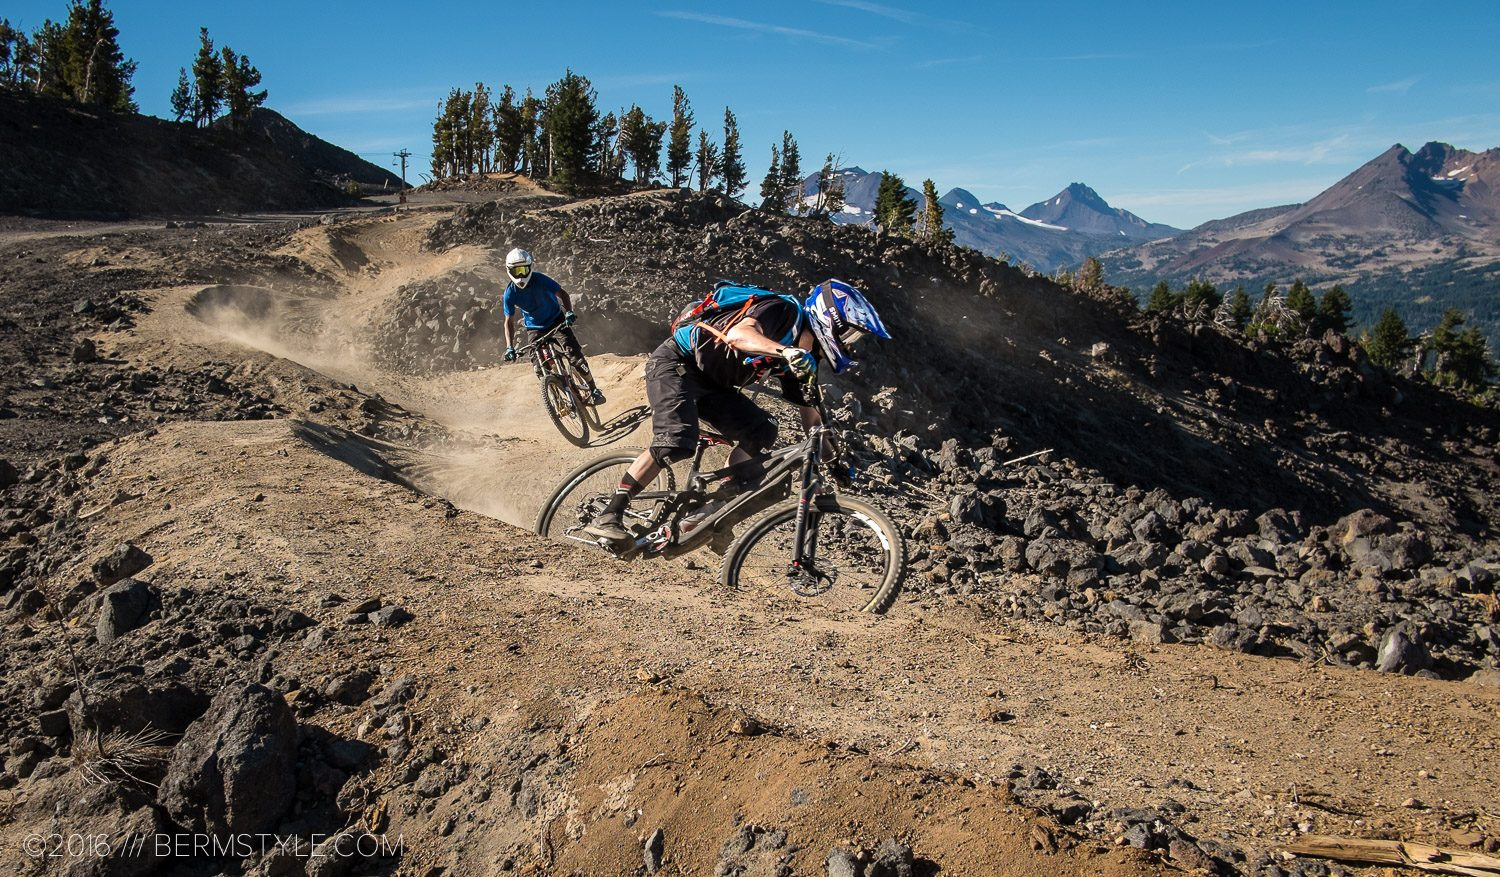 Destination: Mt. Bachelor Bike Park — Bend, Oregon